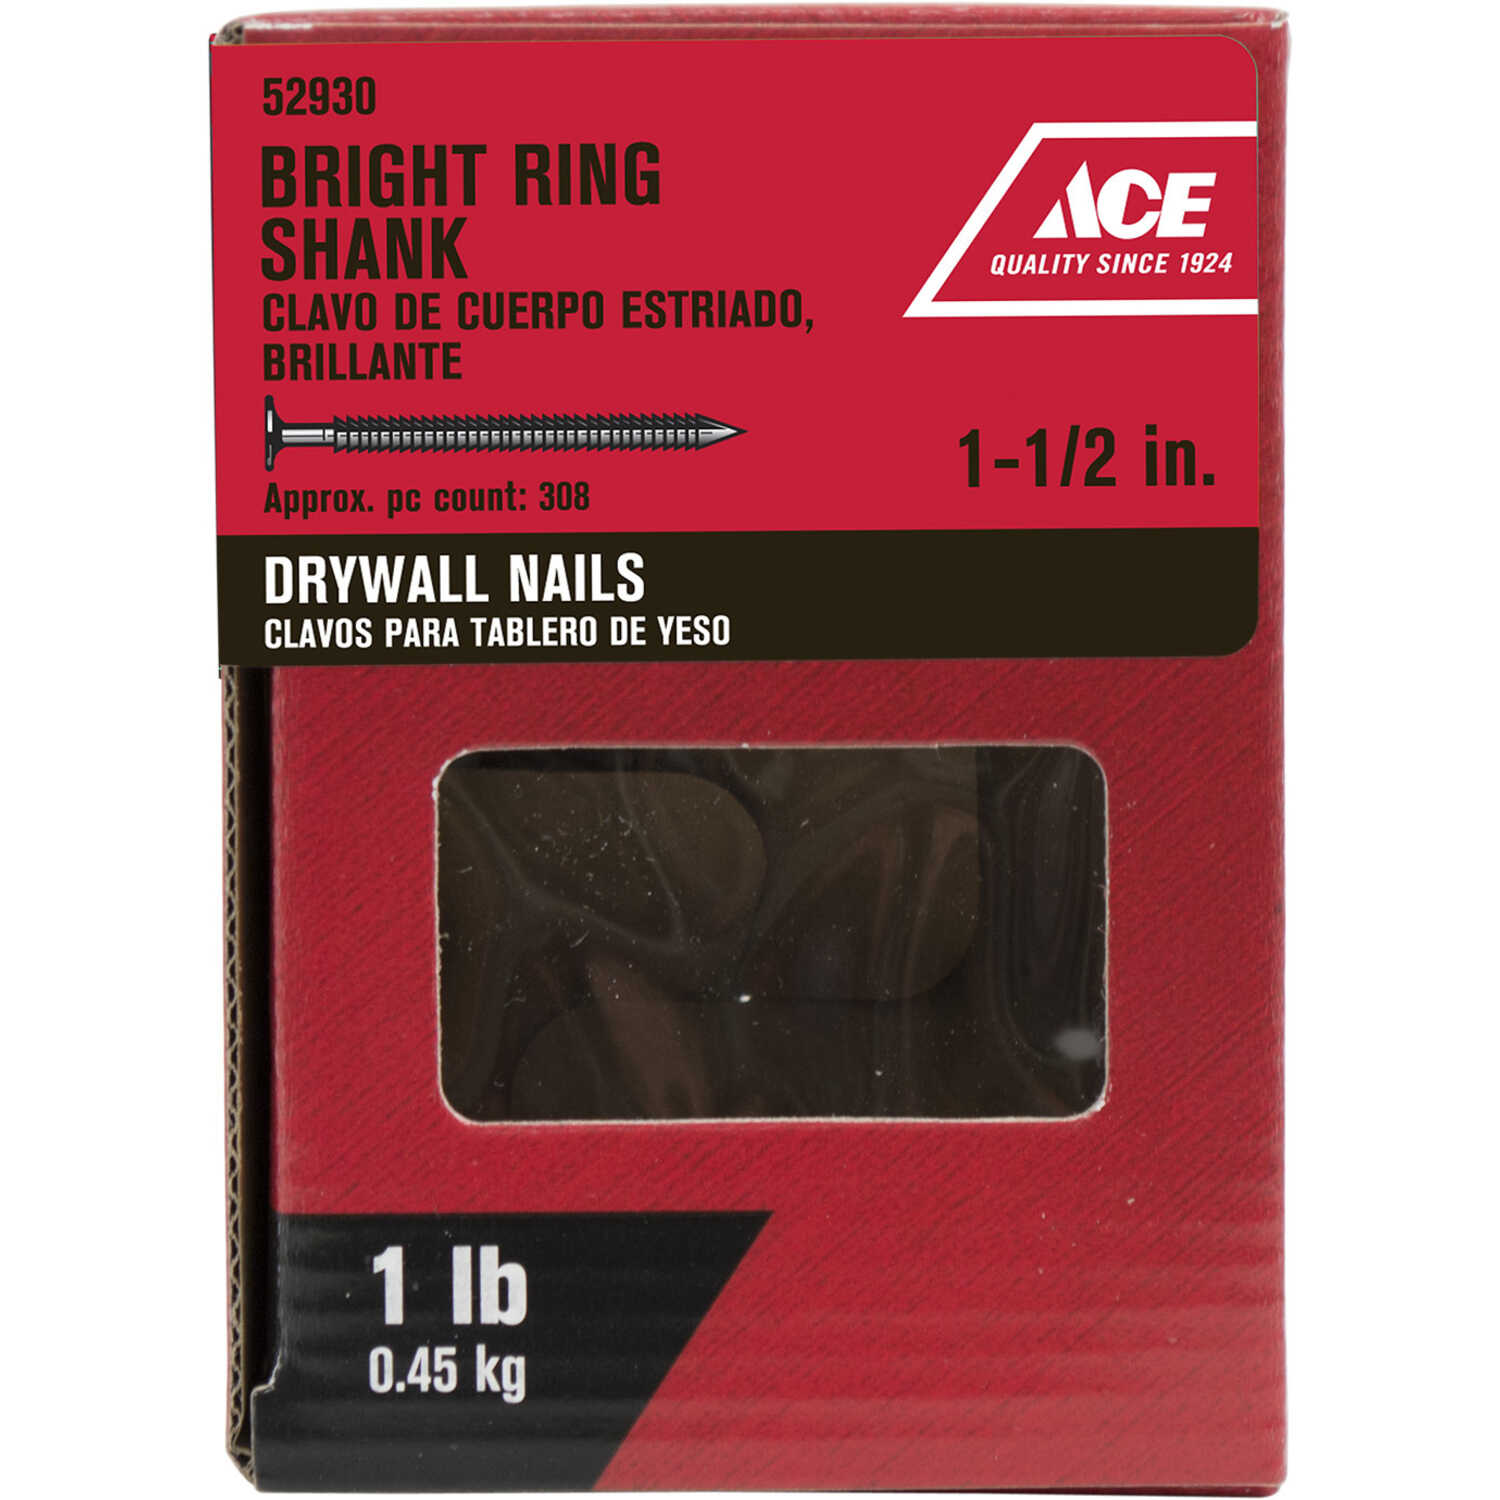 Ace  1-1/2 in. L Drywall  Bright  Nail  Annular Ring Shank  Flat  1 lb.